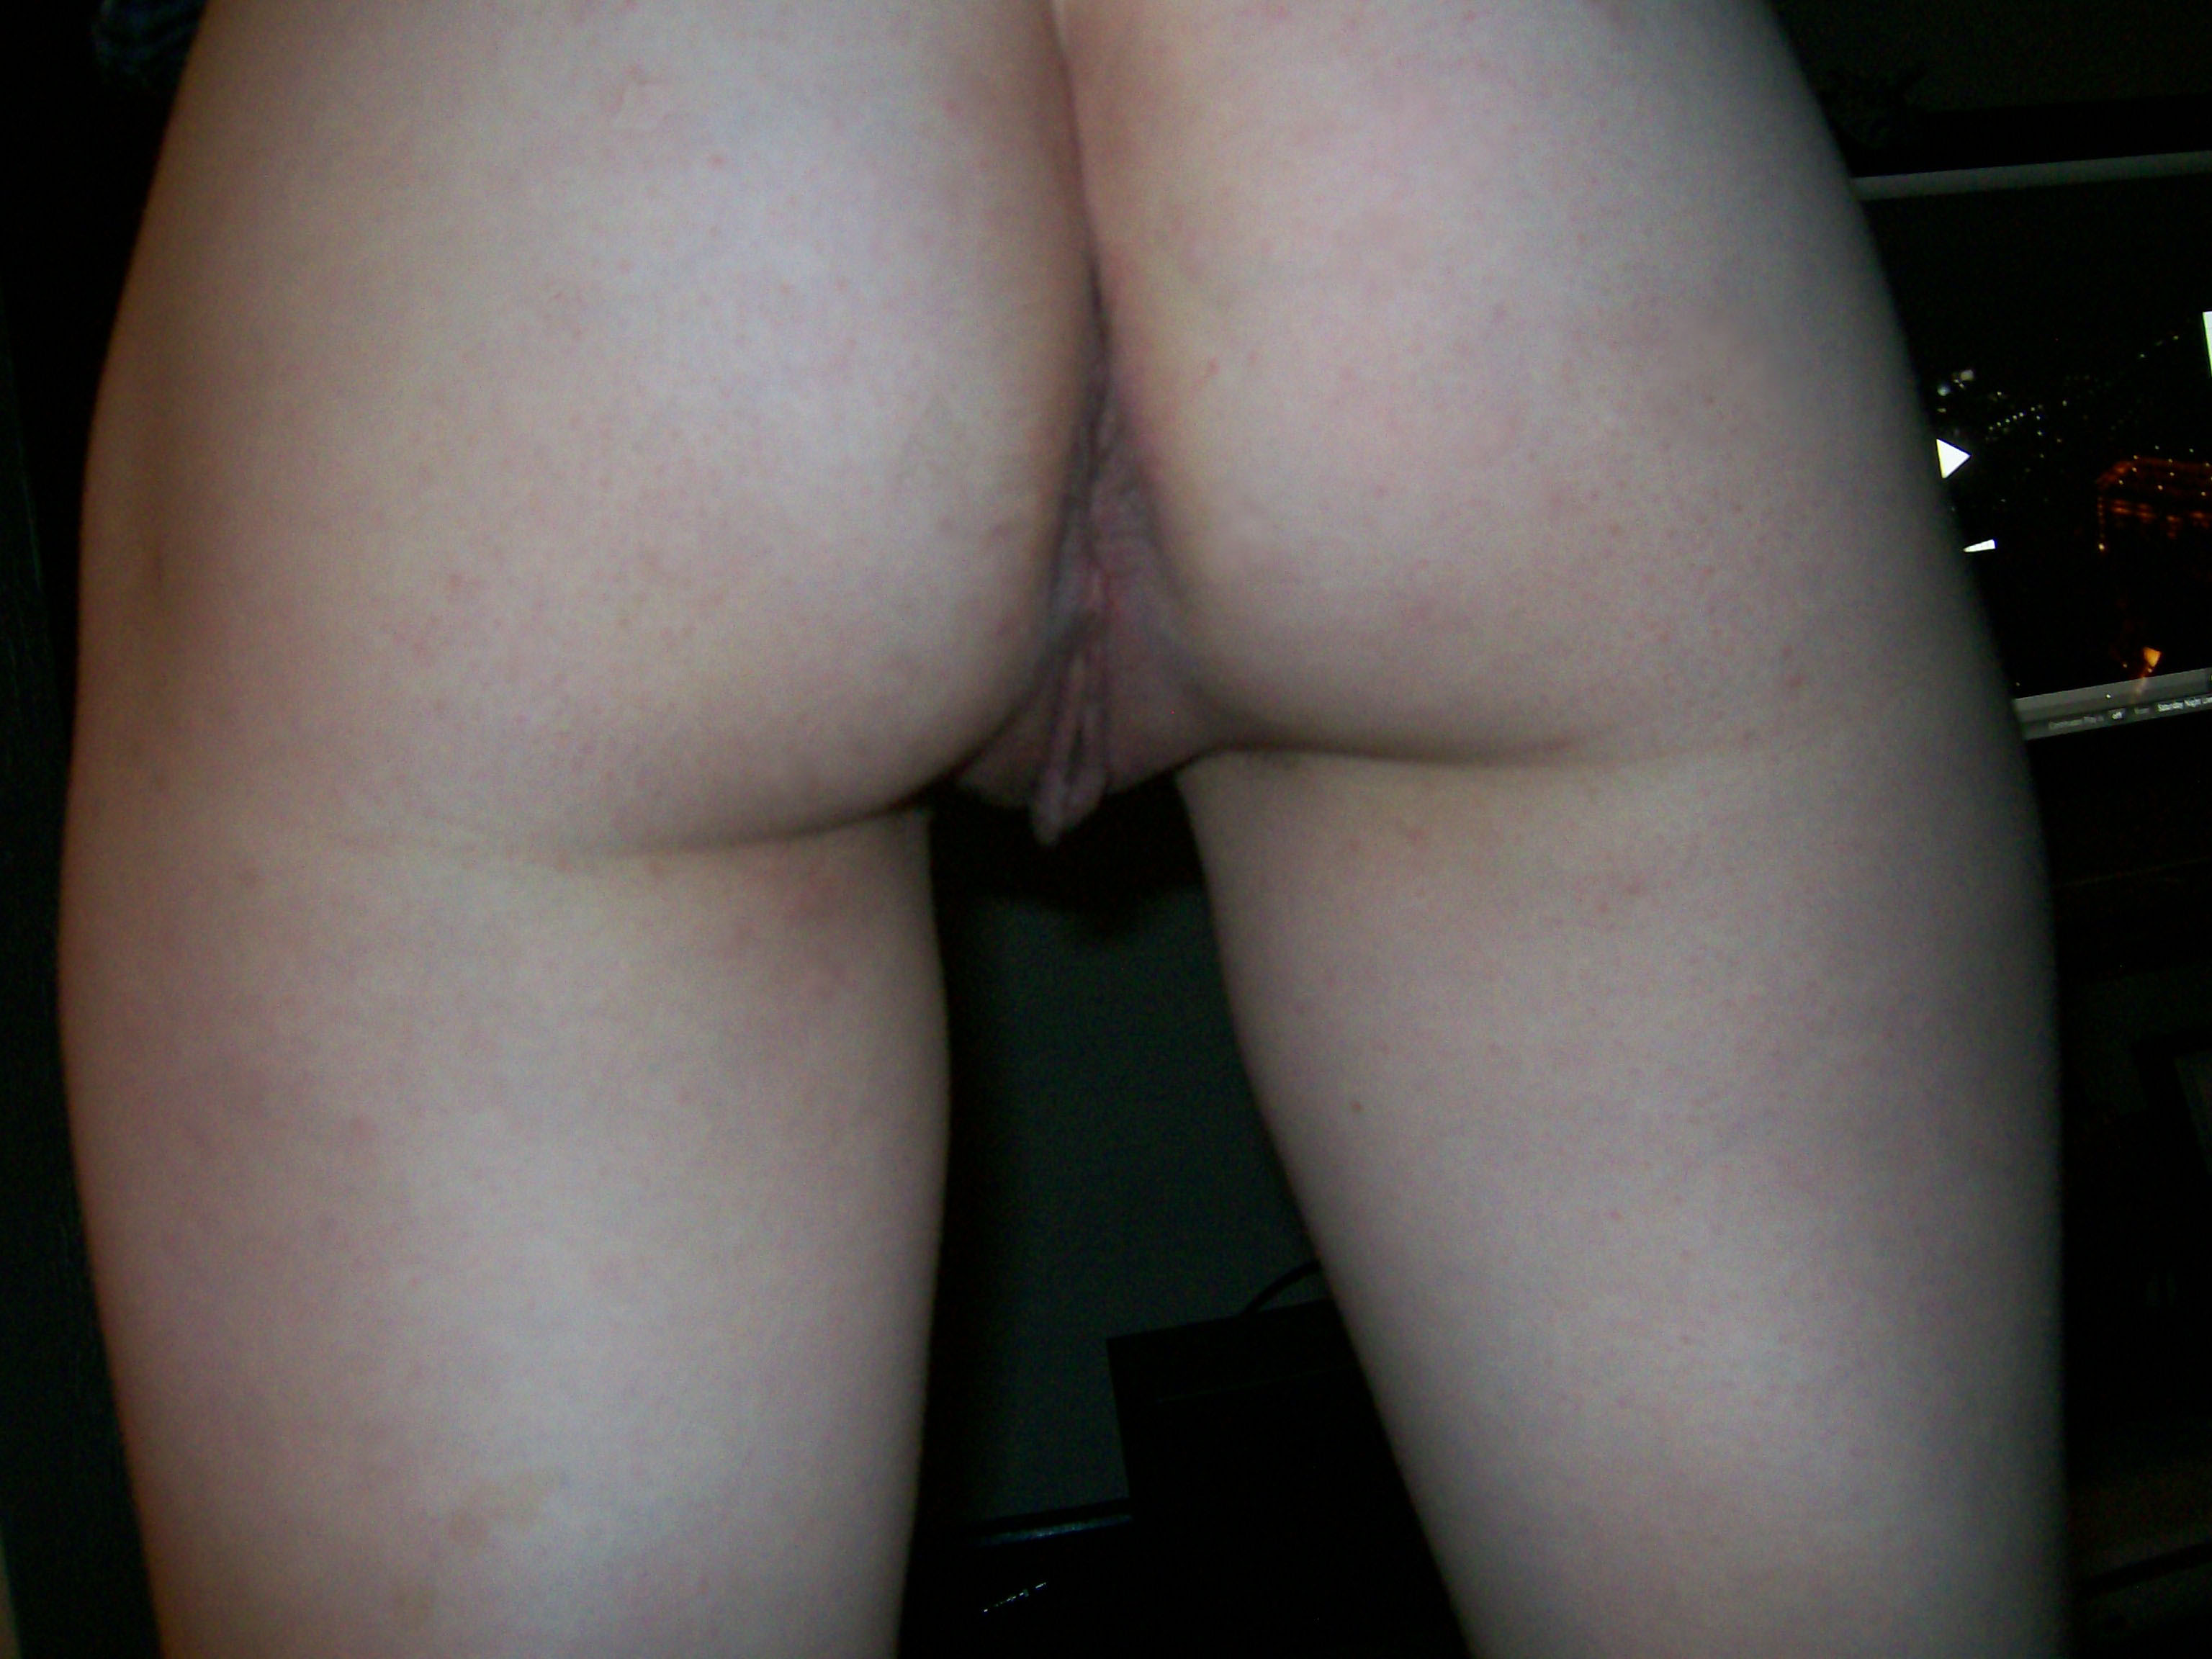 Psycho Ex Girlfriend Pussy Revenge Pics Submitted  Nude -2102